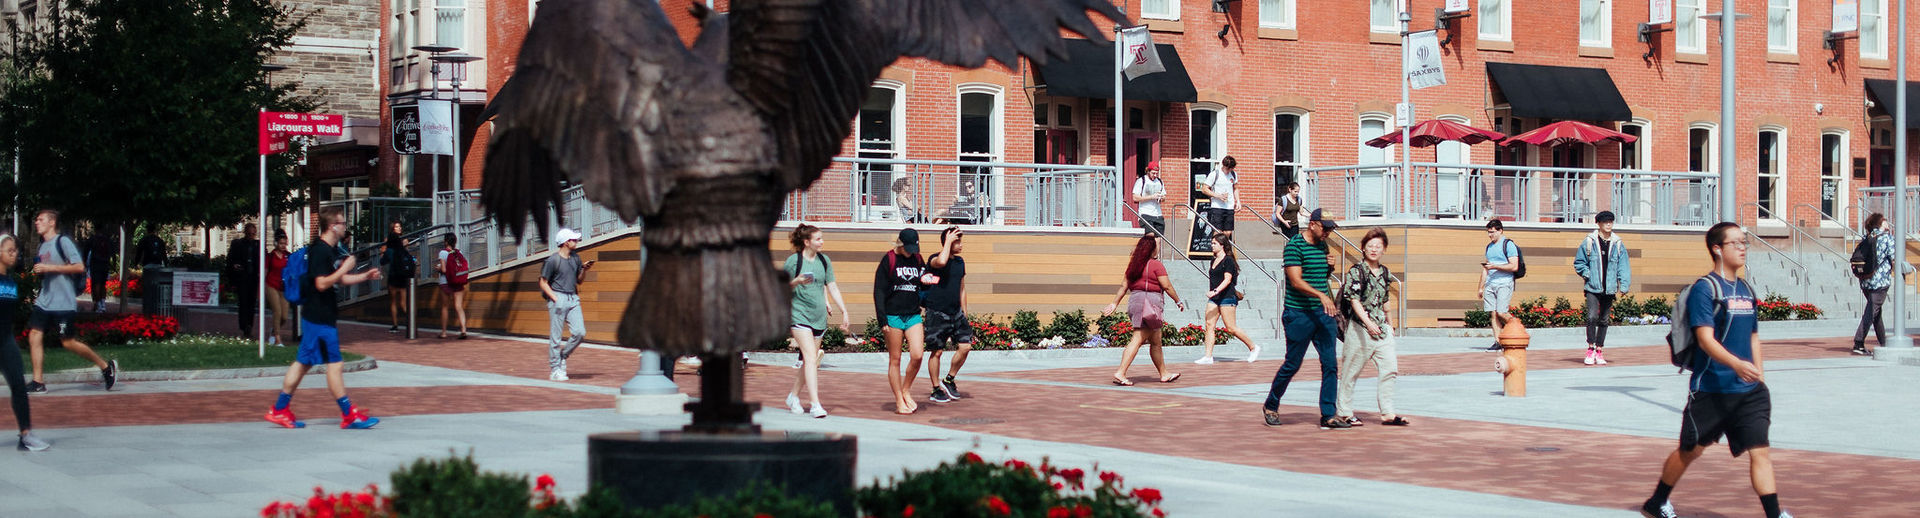 Students on Liacouras Walk on a sunny day.